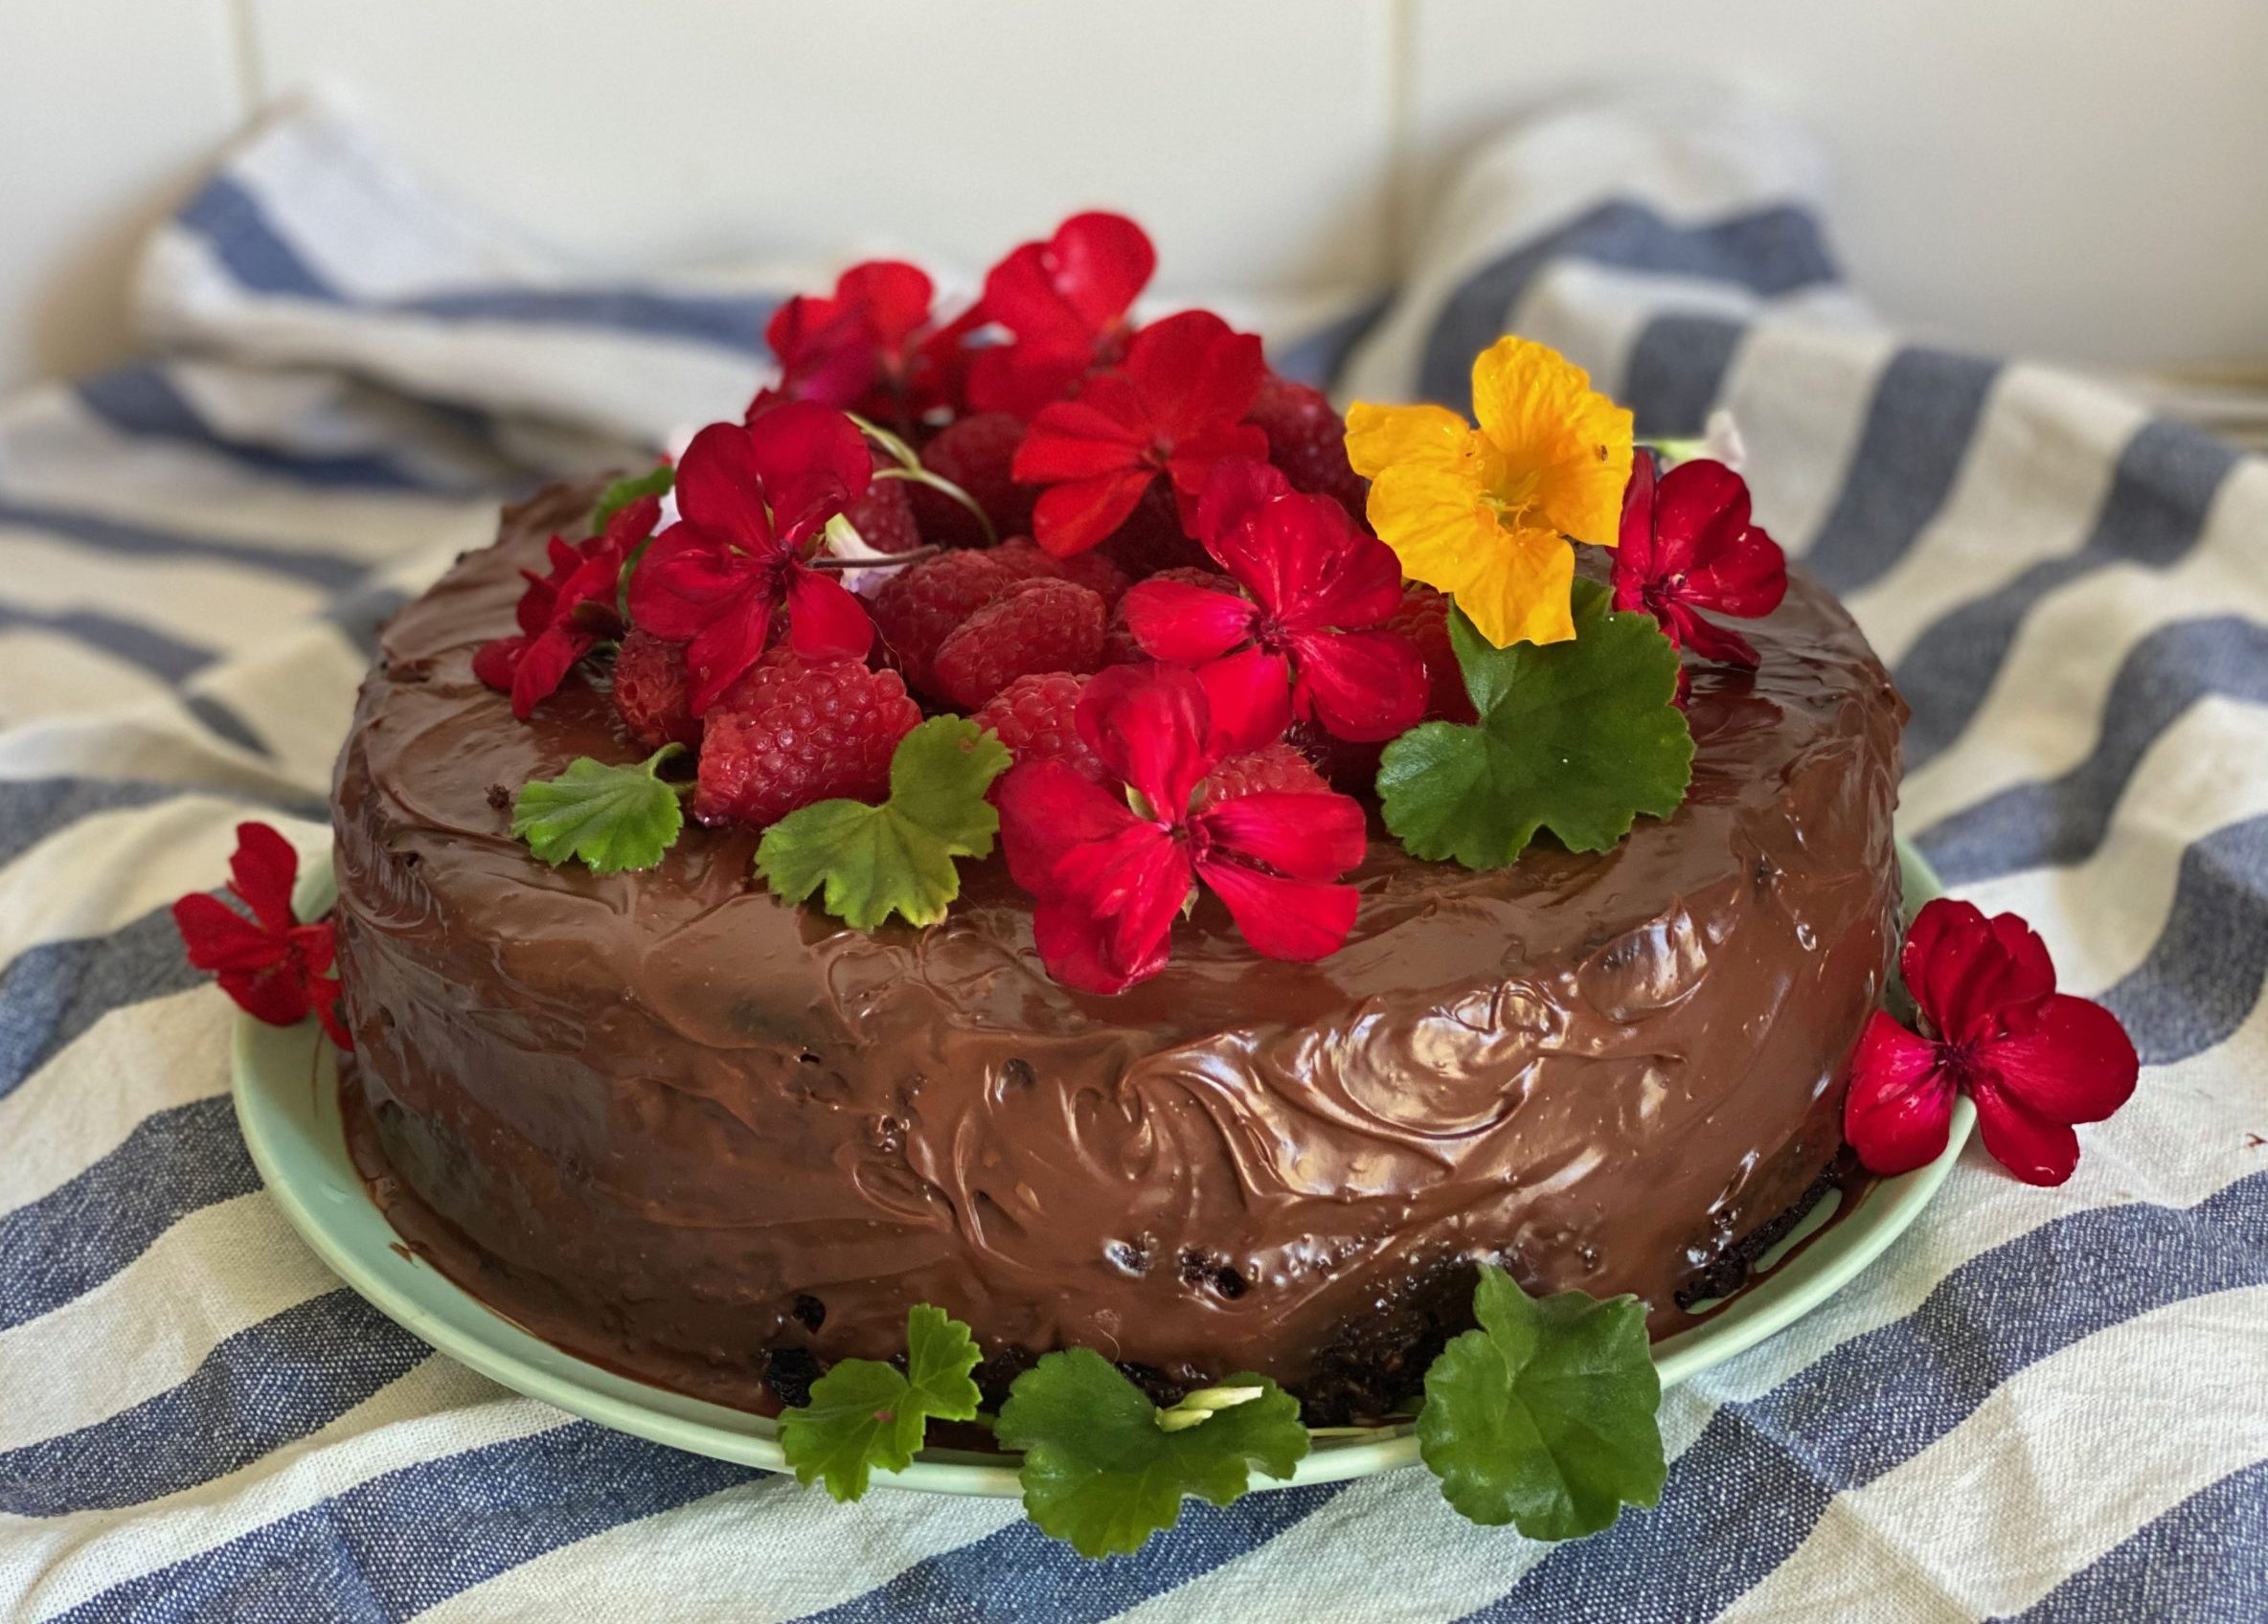 Best-ever vegan chocolate cake with vegan chocolate ganache & edible flowers